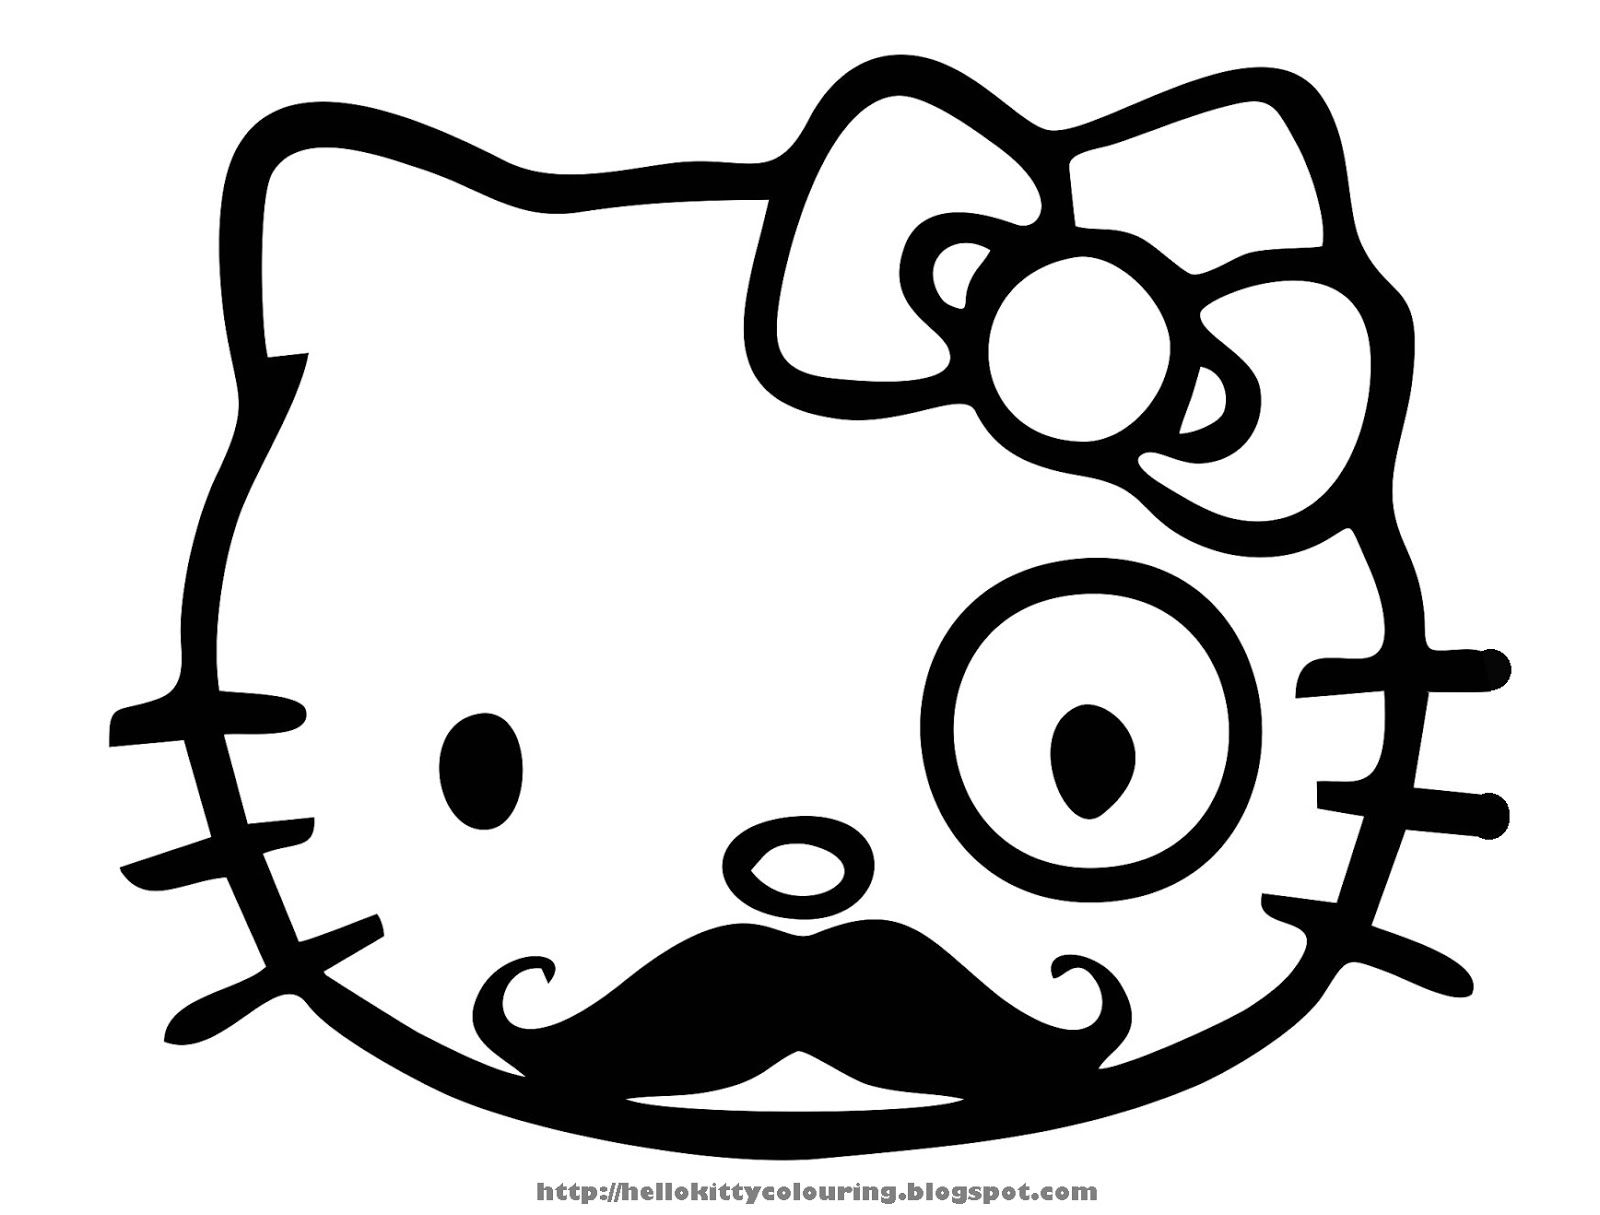 HELLO KITTY COLORING PAGES | Hello kitty coloring, Kitty coloring, Hello  kitty colouring pages